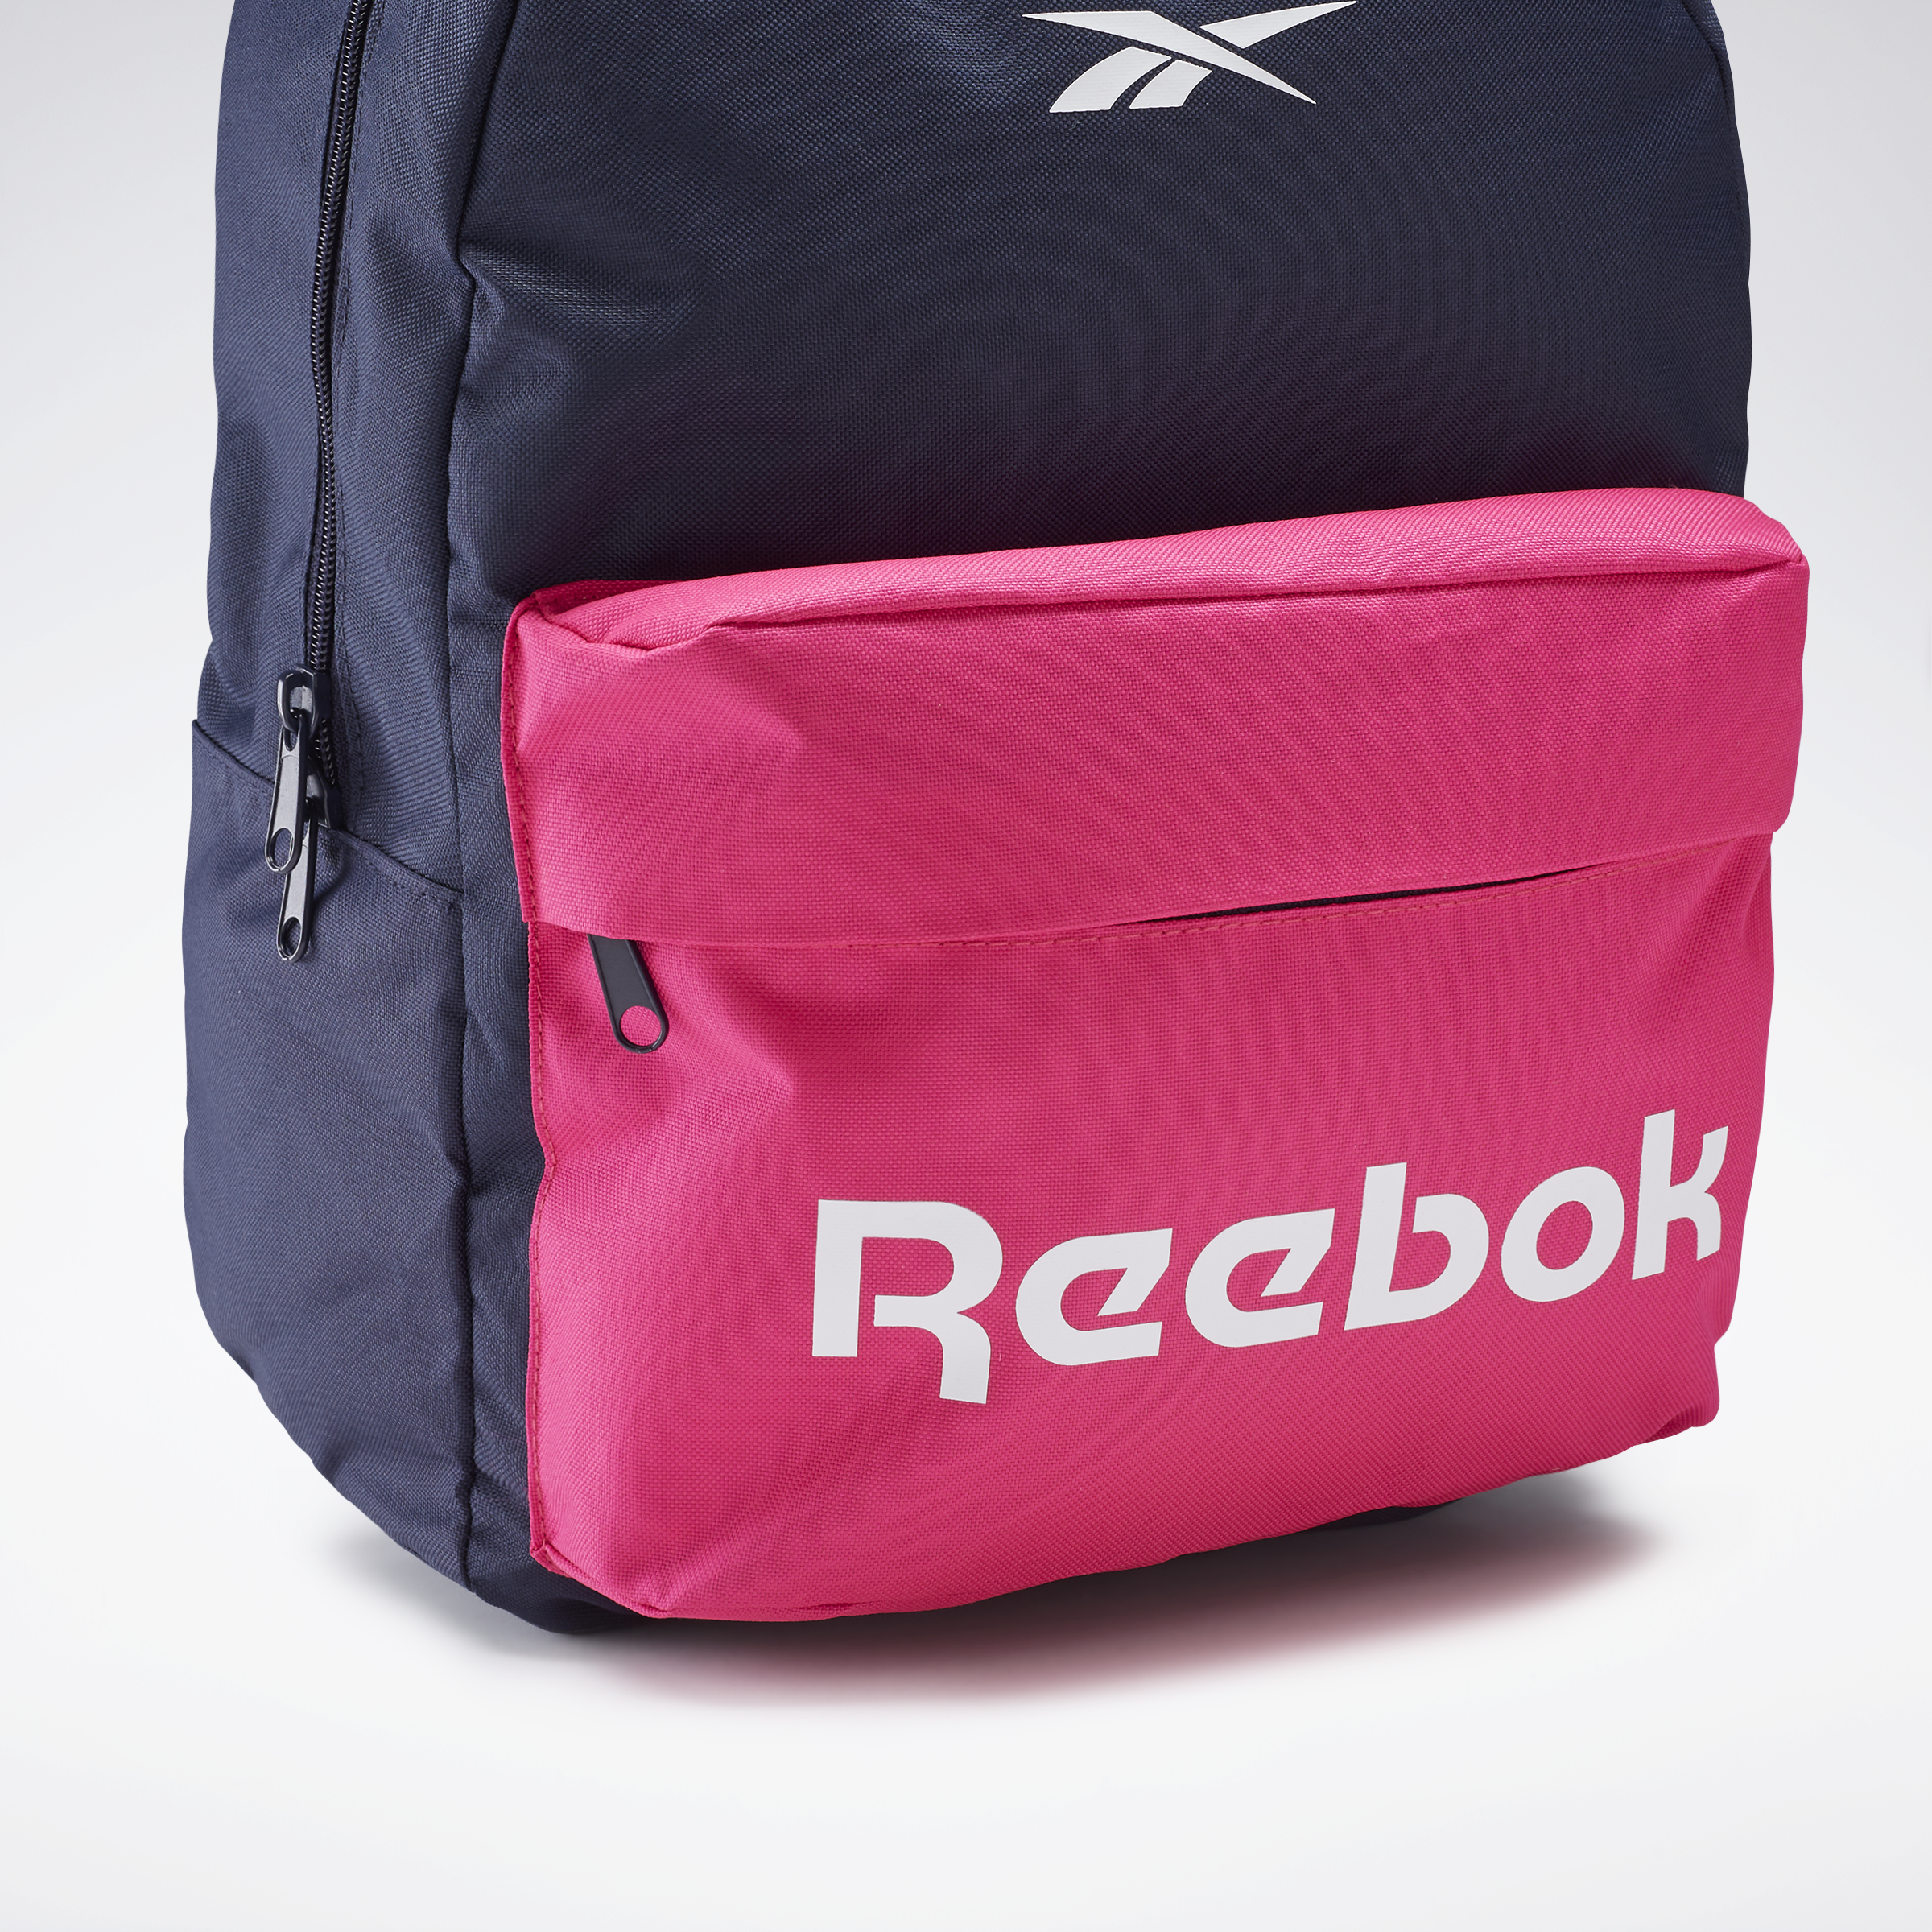 Indexbild 12 - Reebok Sport Active Core Backpack Small Herren, Damen Taschen Rucksäcke